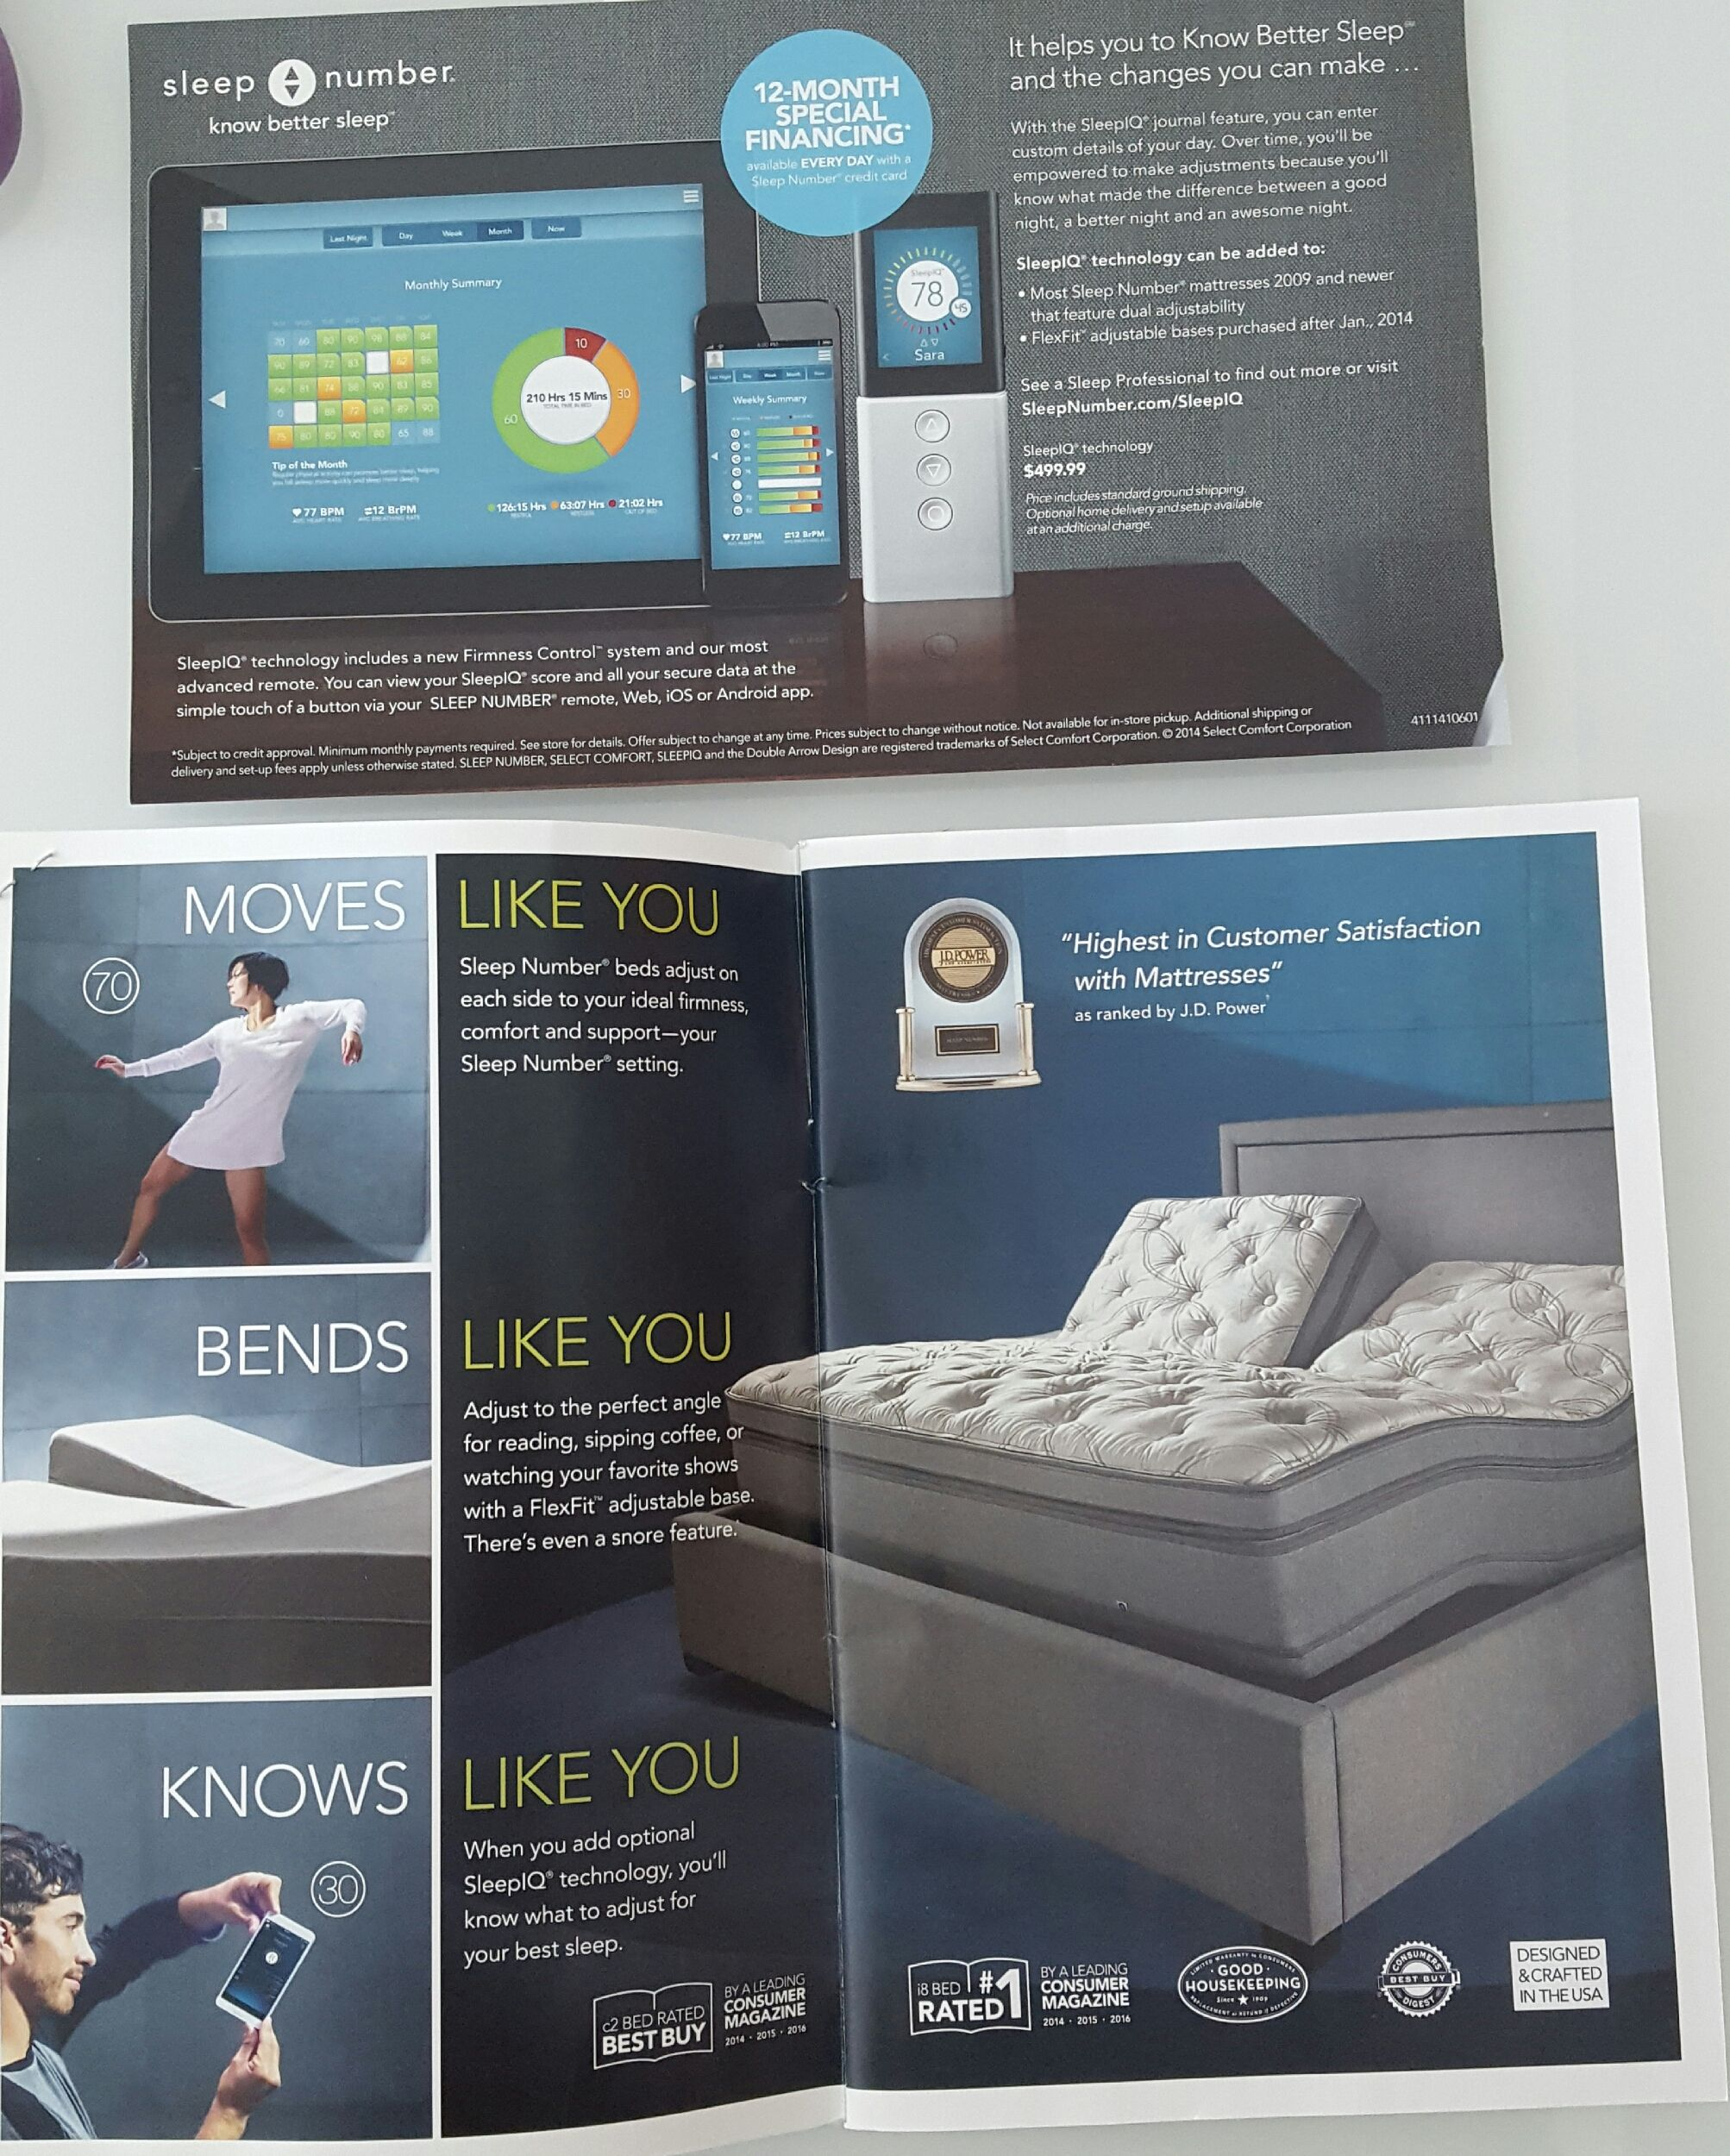 sleep number bed with sleep iq technology track how you sleep and